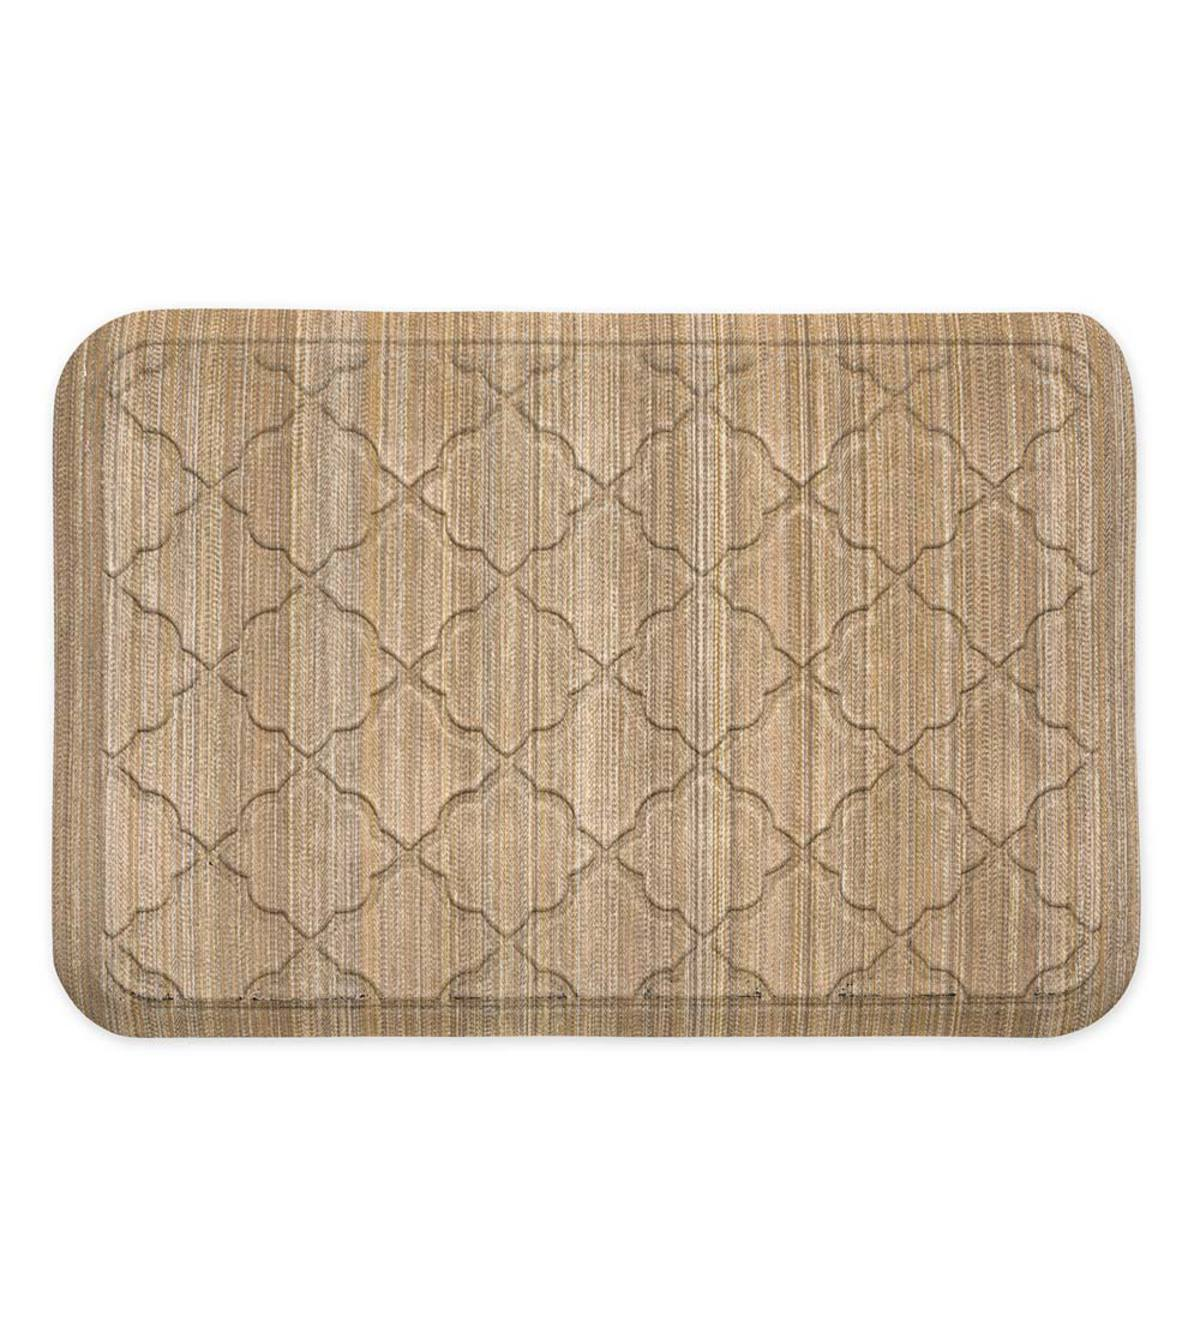 "Anti Fatigue Comfort Mat, 22""x 60"" - Beige Stripe"